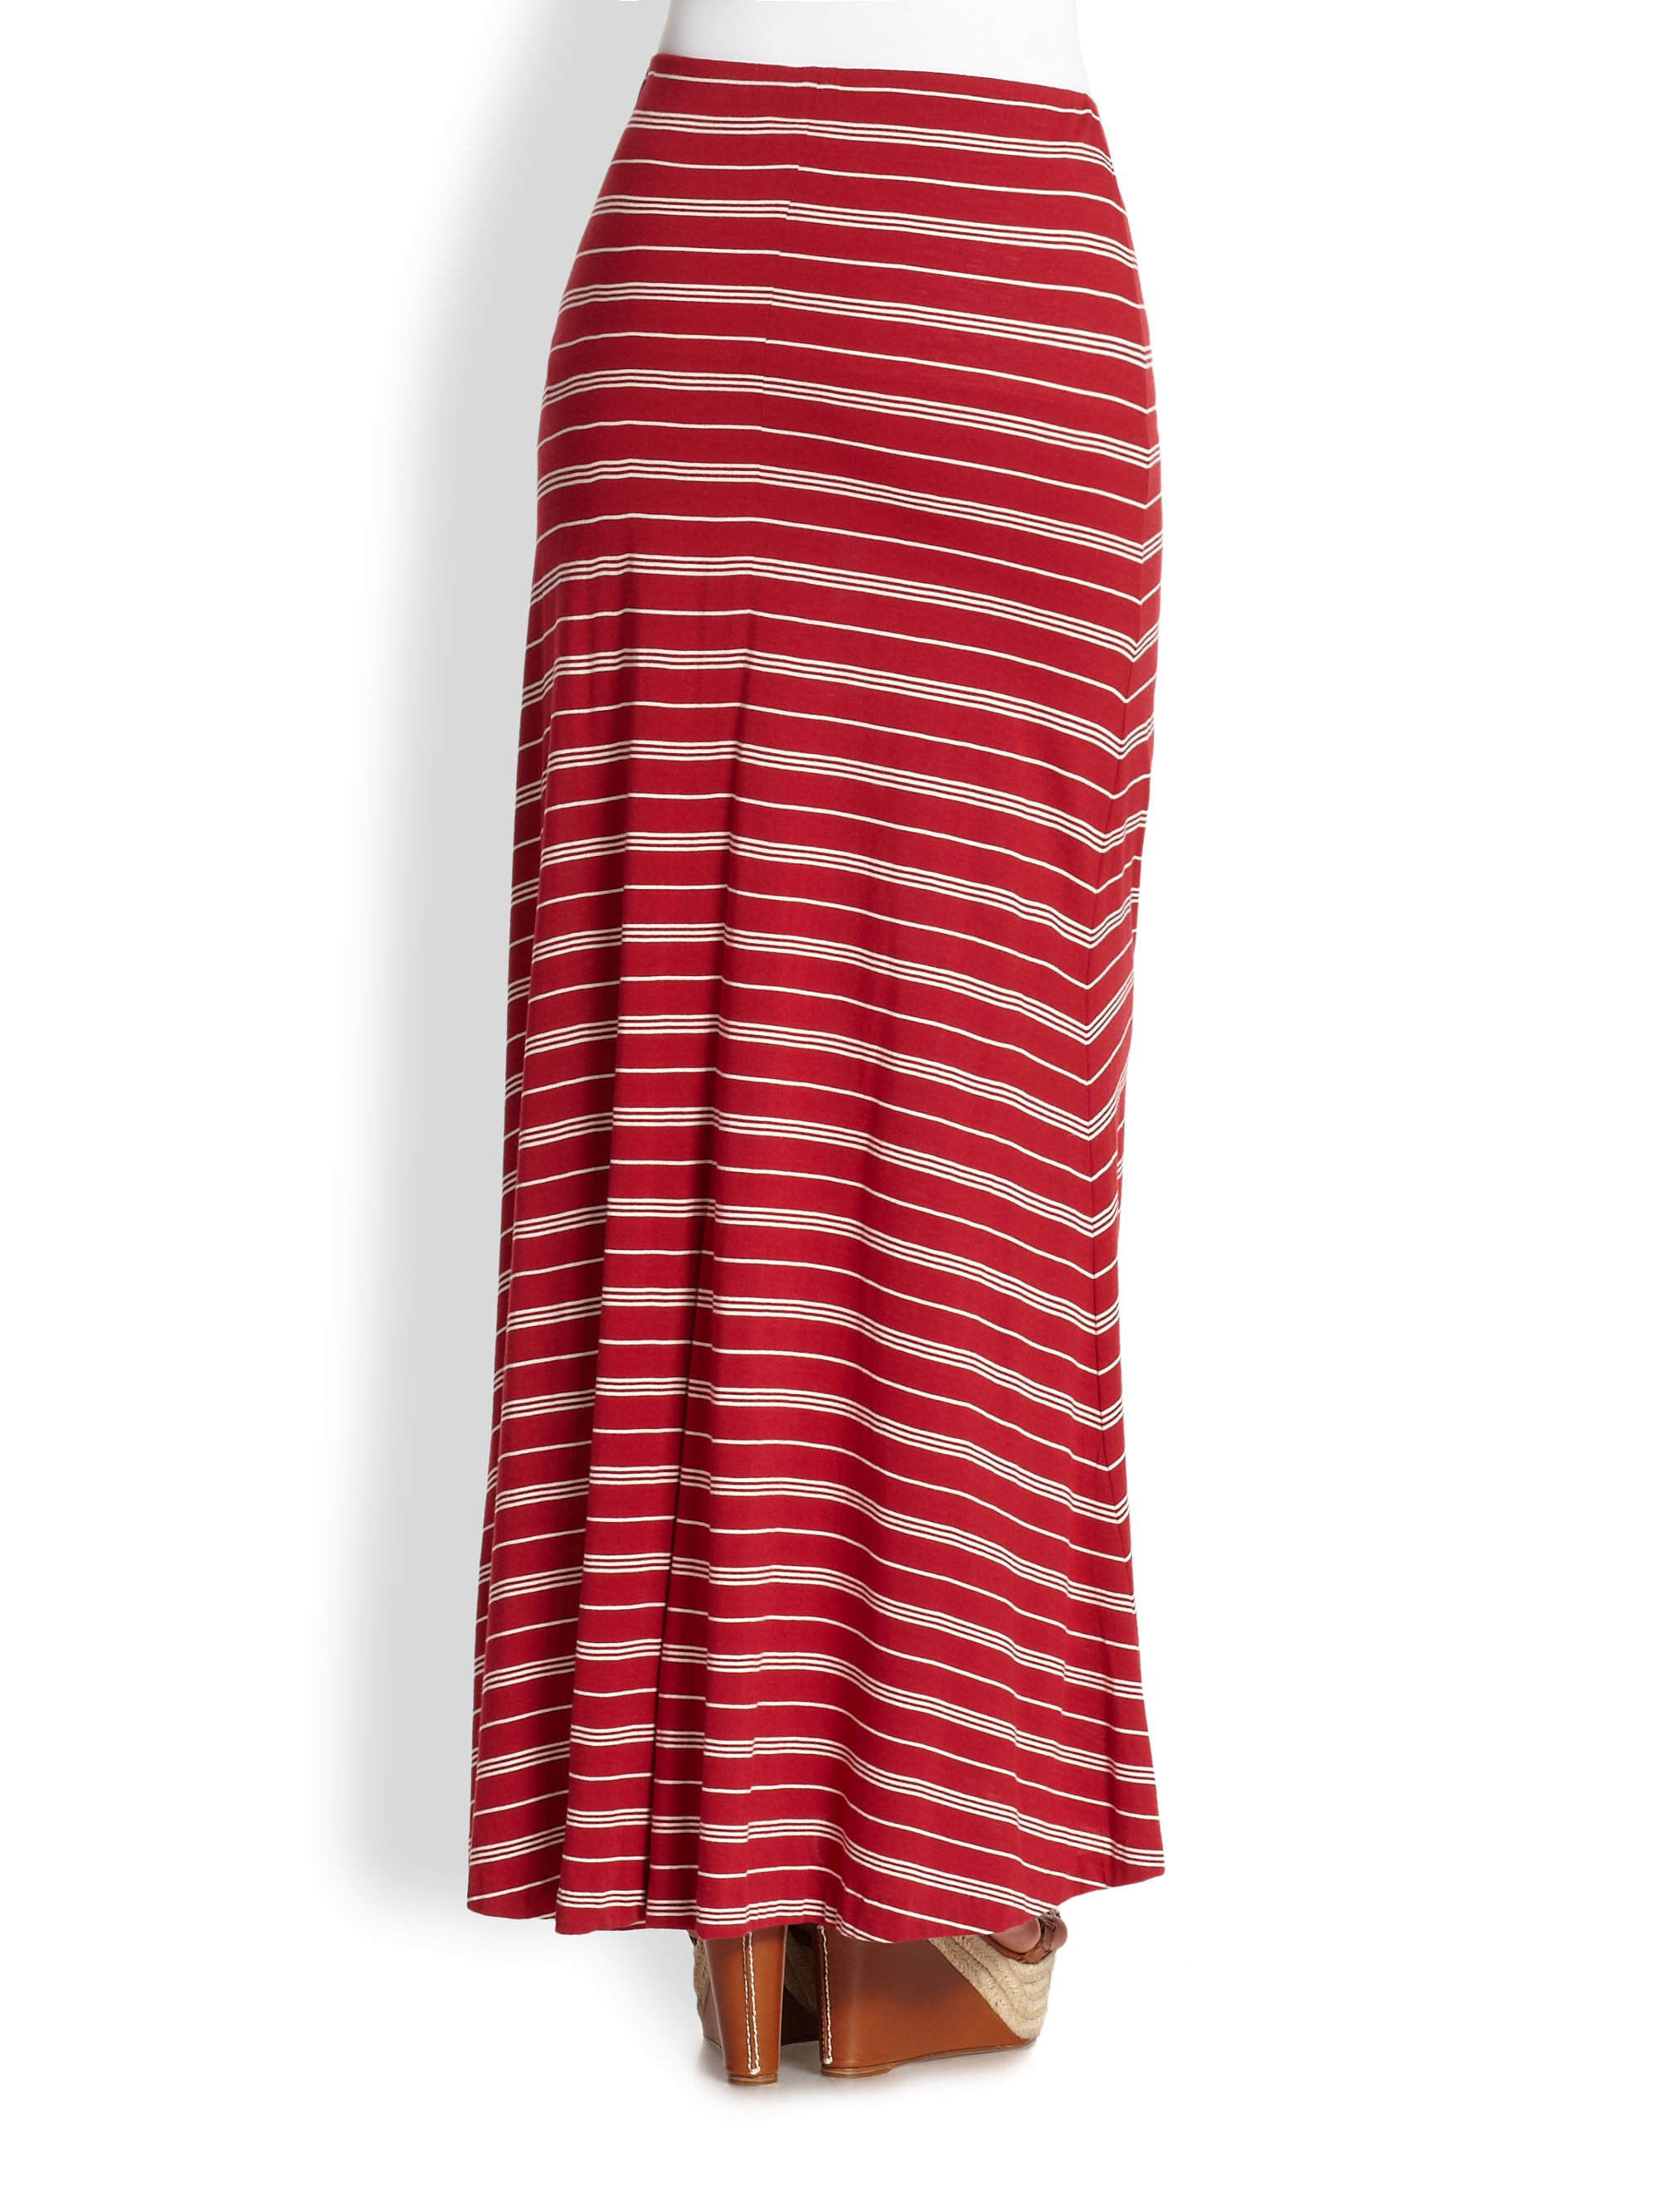 Polo ralph lauren Kimika Striped Maxi Skirt in Red | Lyst